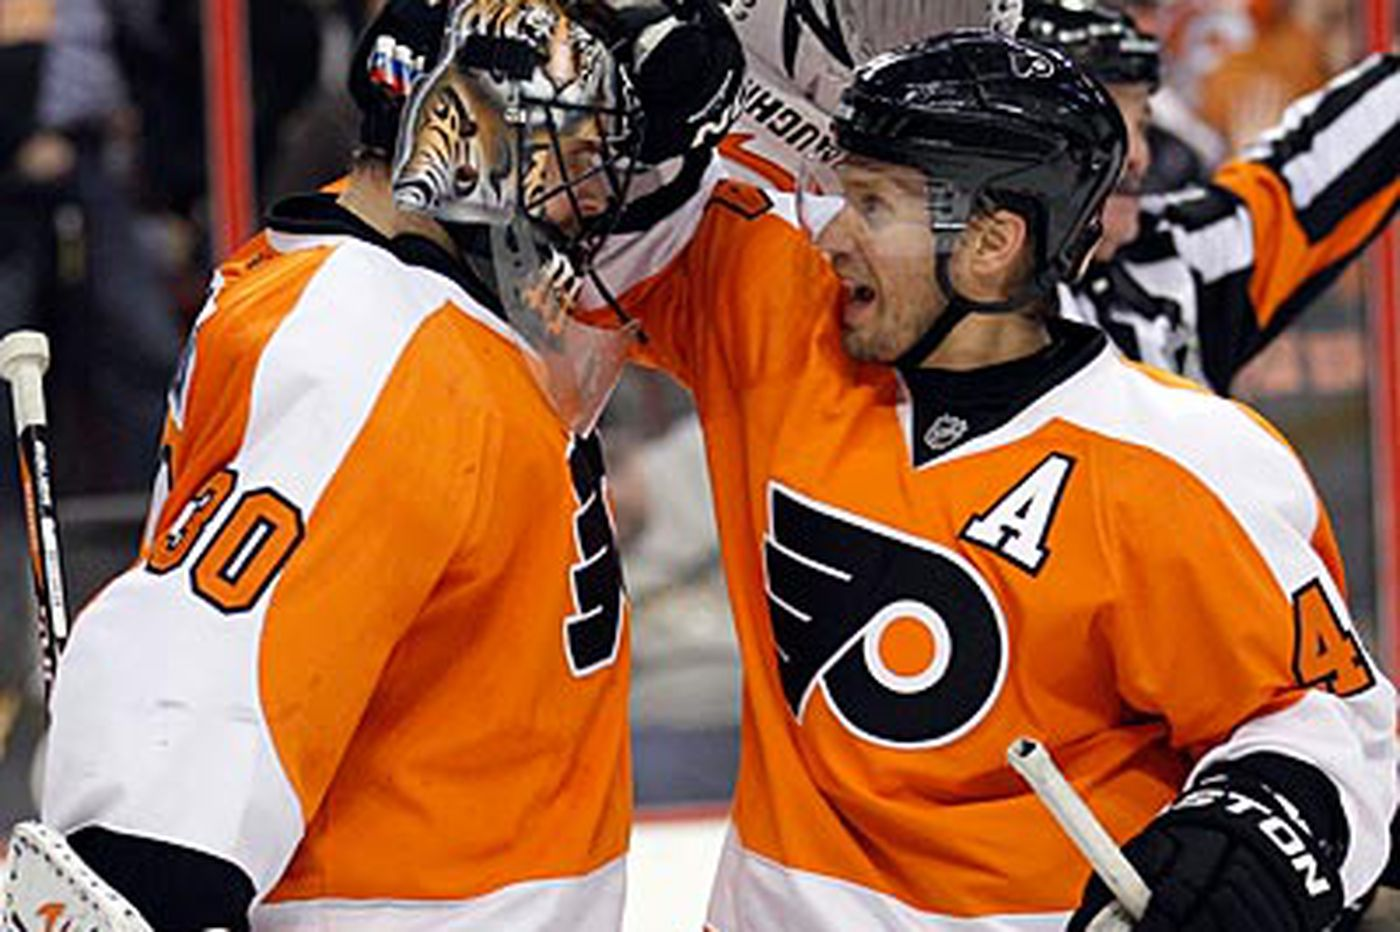 Flyers know they can count on Timonen